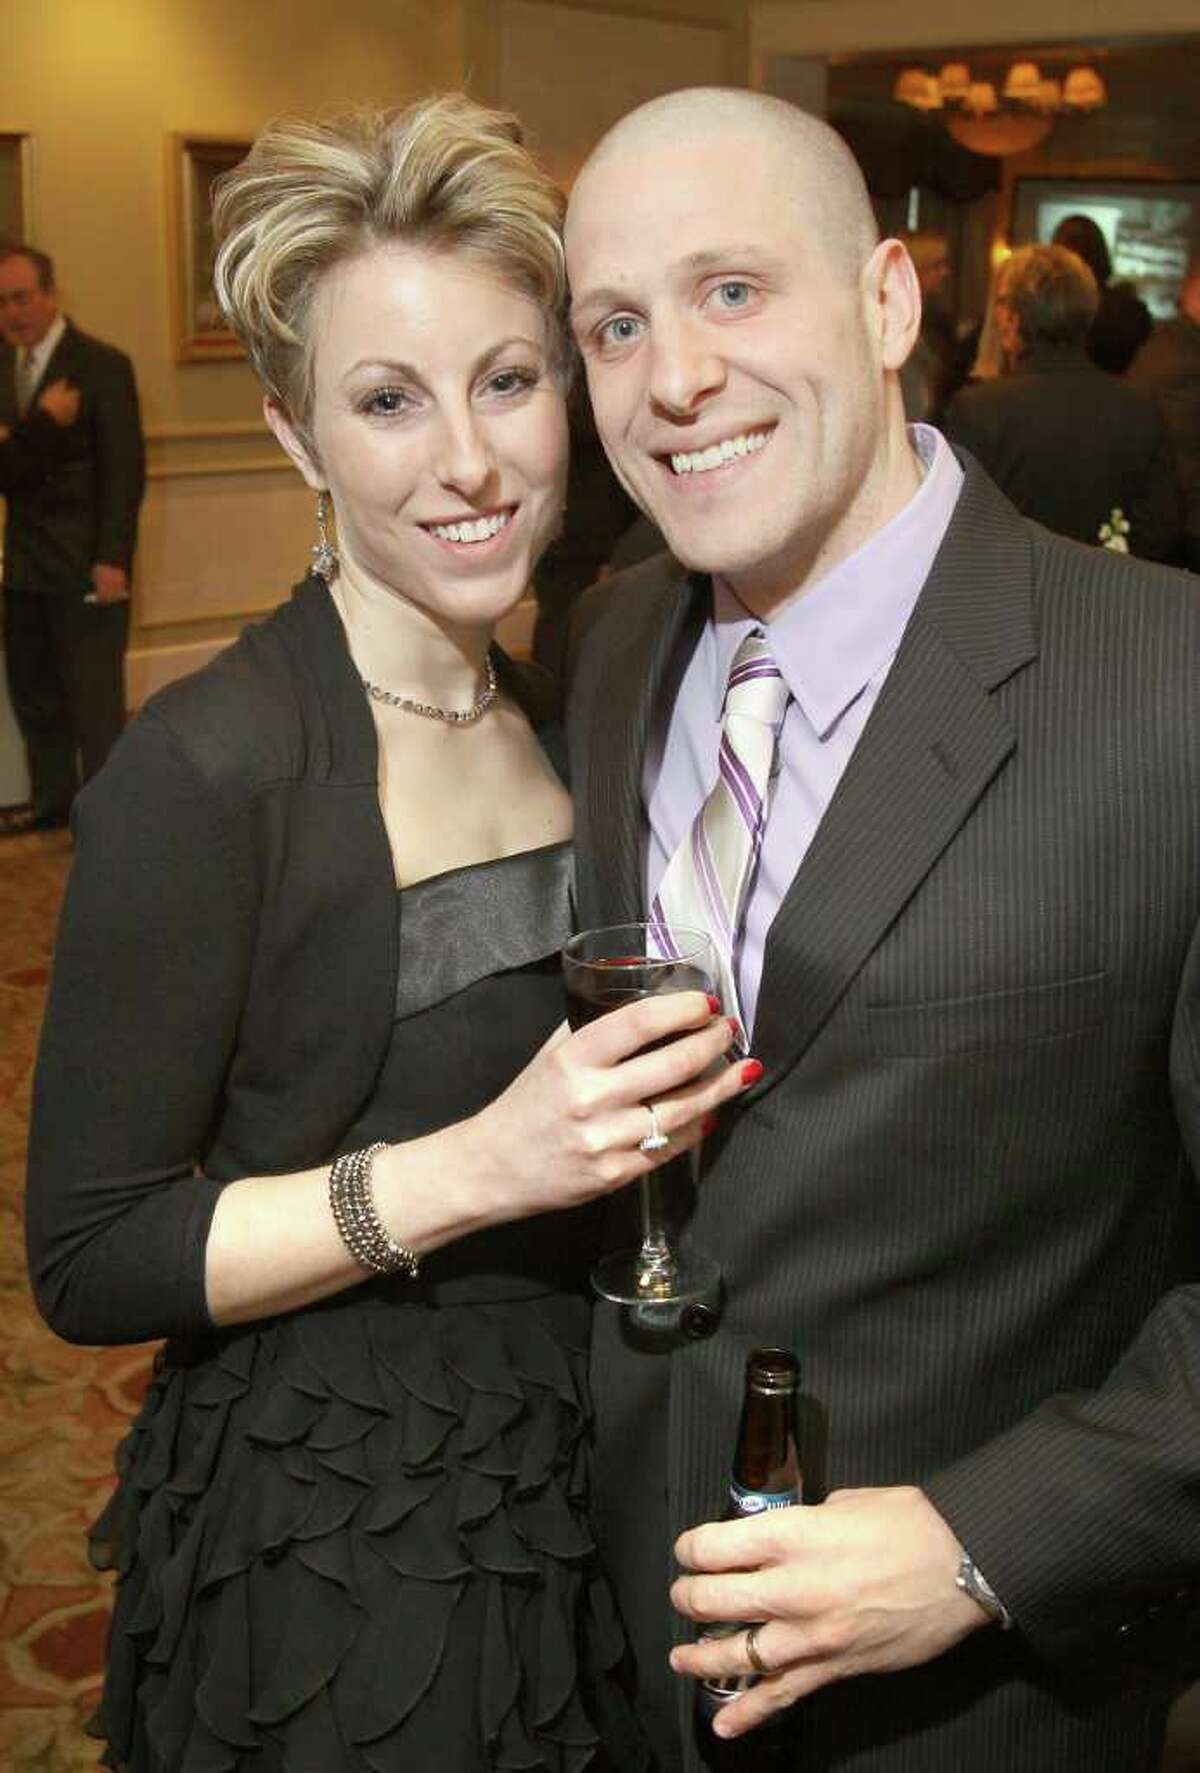 Albany, NY - March 26, 2011 - (Photo by Joe Putrock/Special to the Times Union) - Erica(left) and Joe(right) Calvanese during A Festive MS Gala presented by the Upstate NY Chapter of the National Multiple Sclerosis Society and the MS Resource of the Tristate Area to support multiple sclerosis education and research.